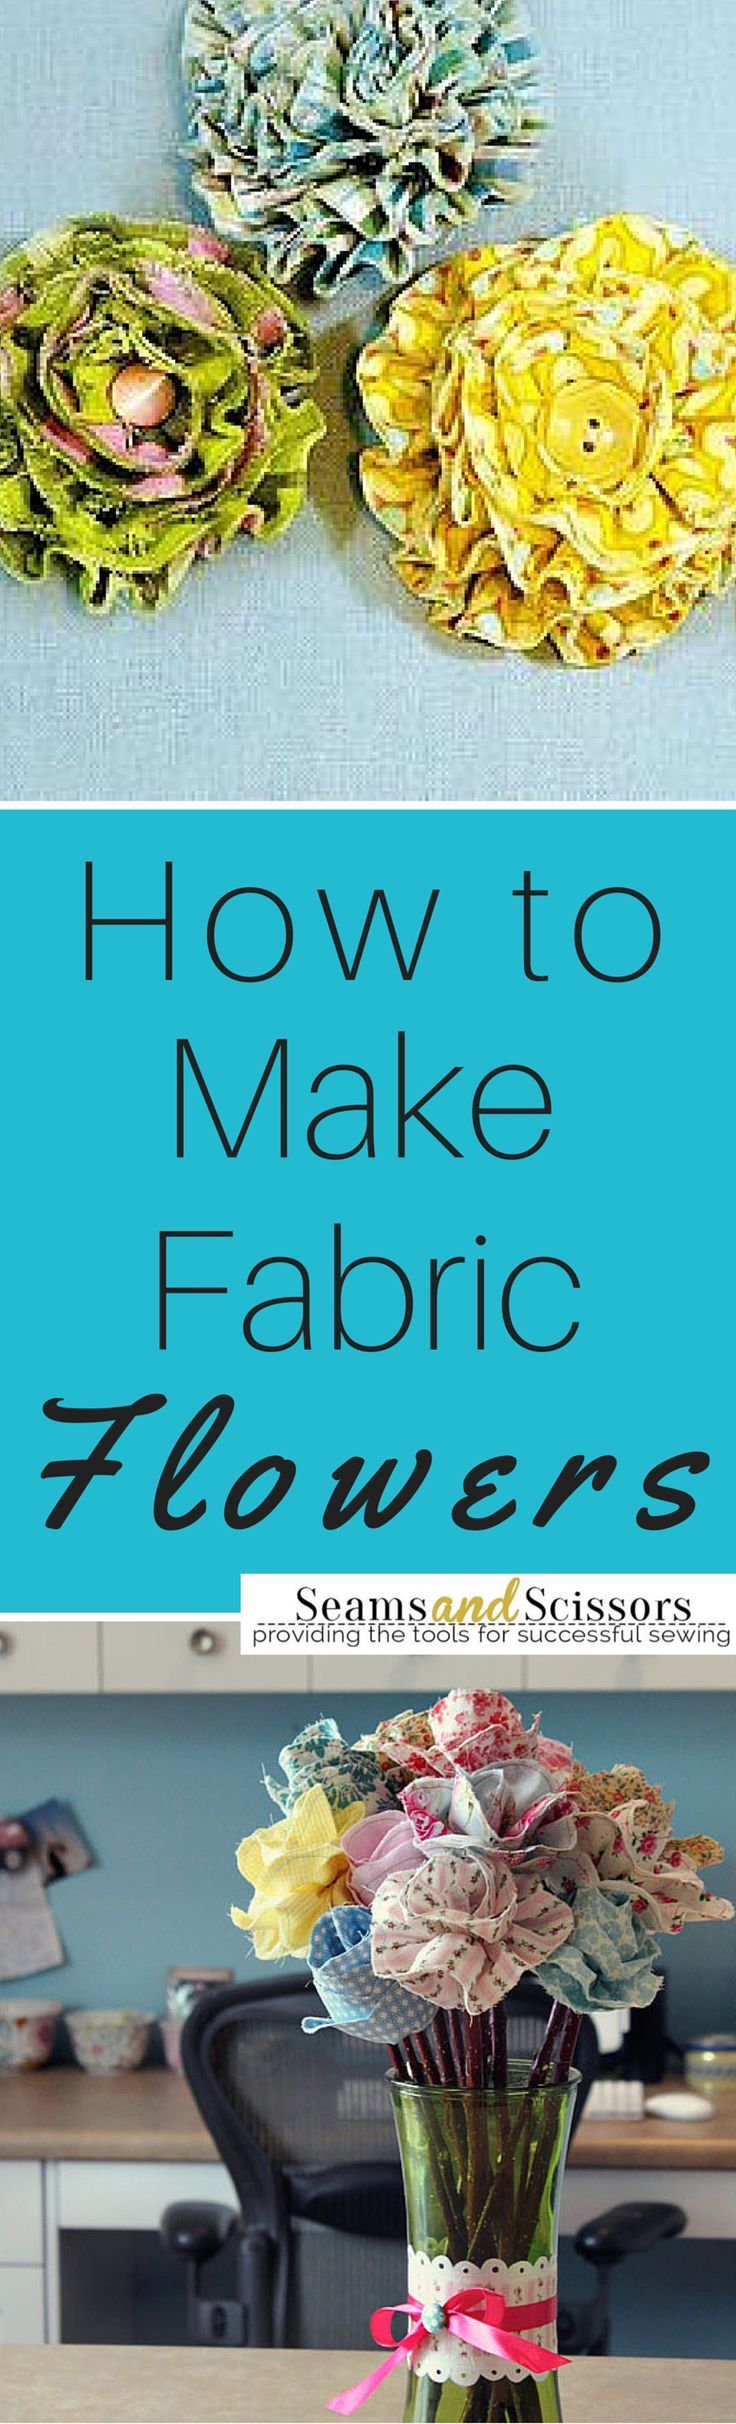 Learn how to make fabric flowers out of scraps, zippers, and more!